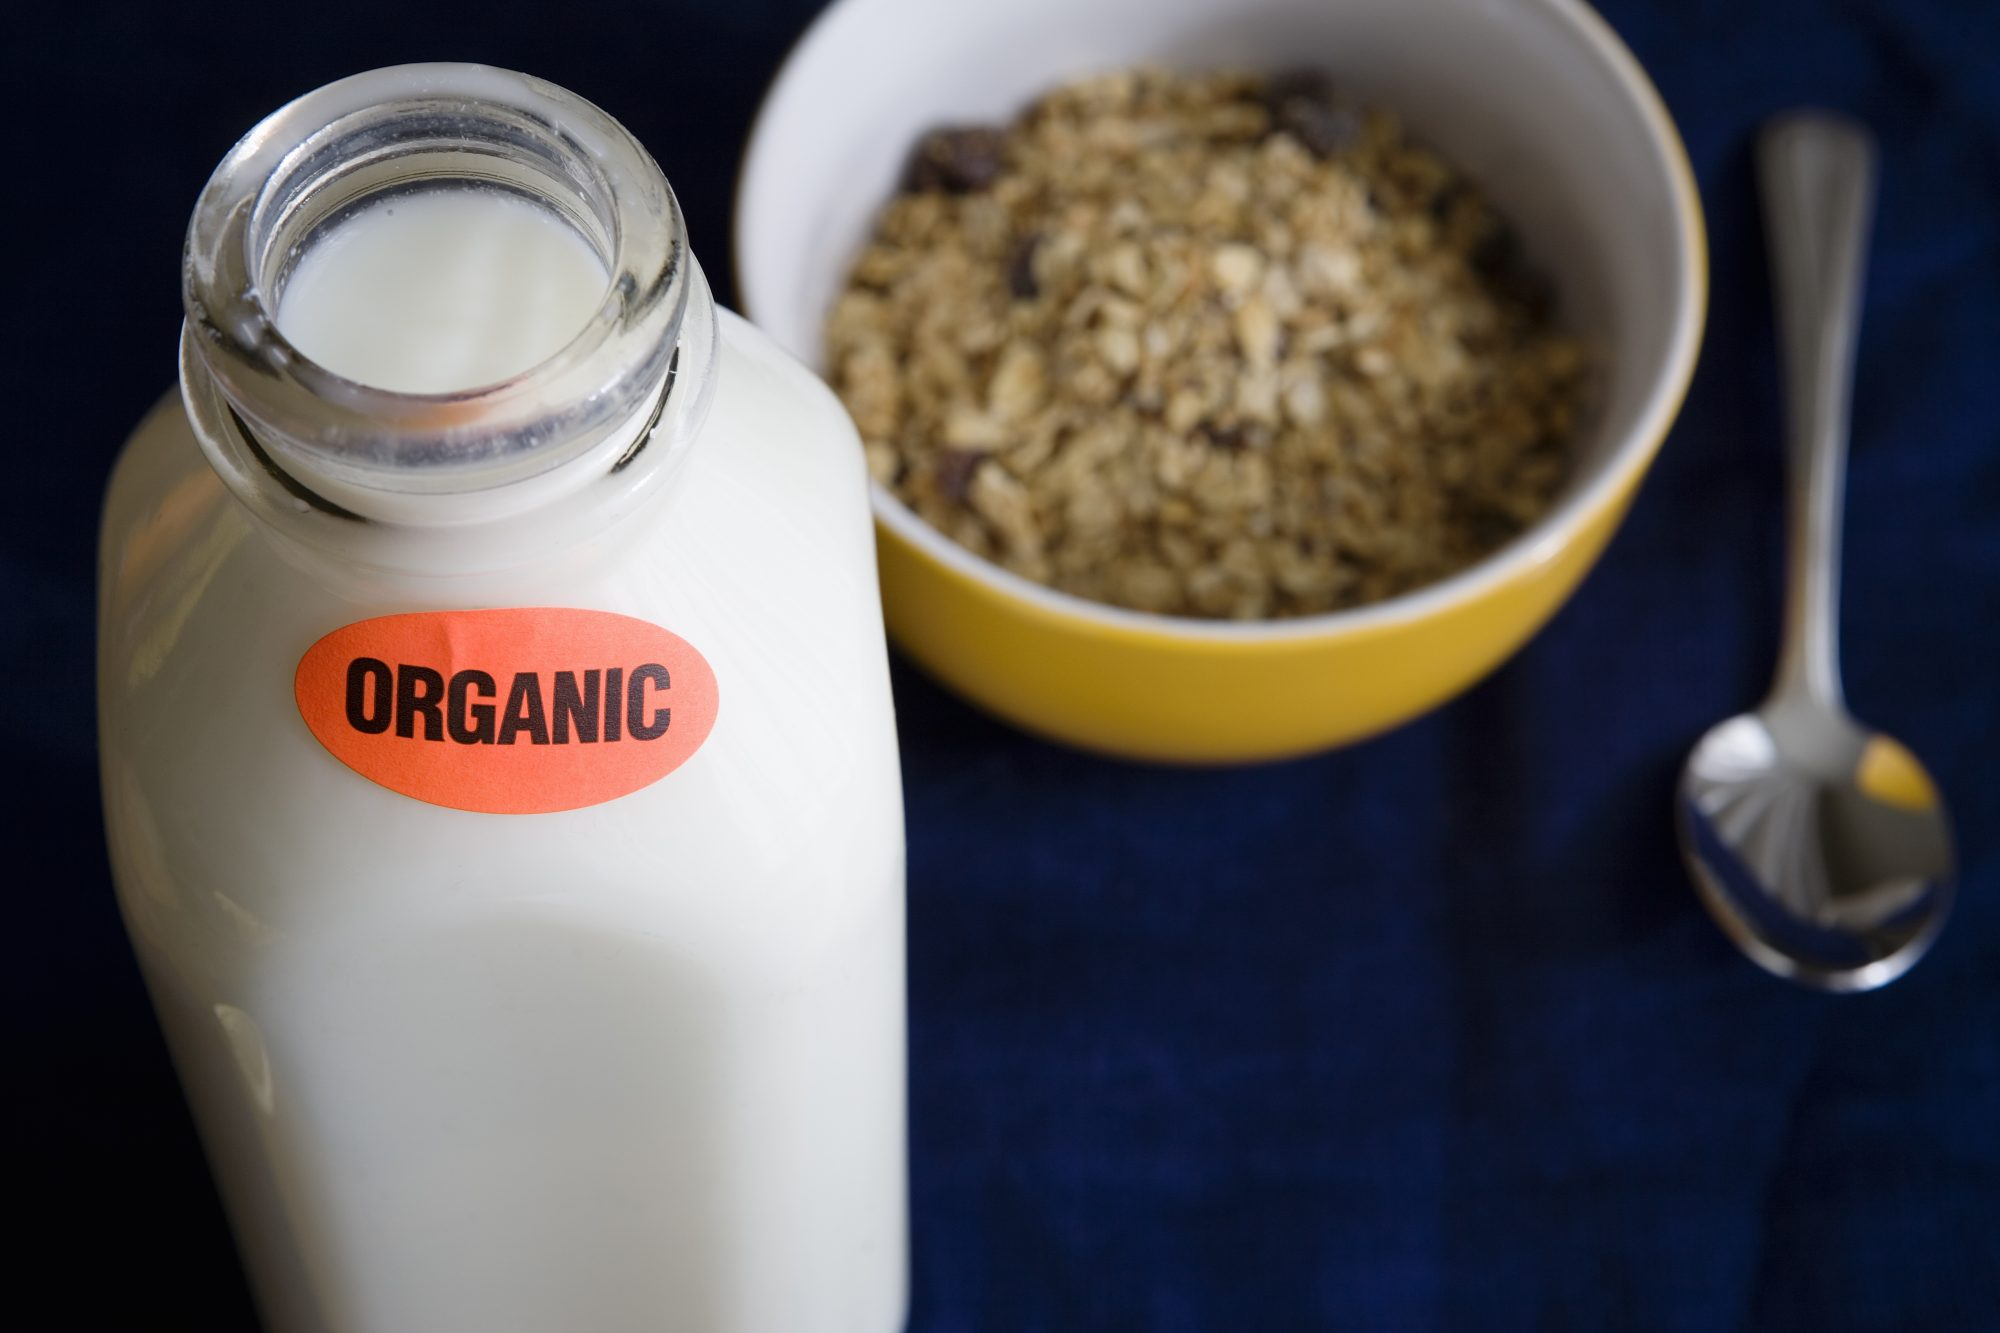 More about organic milk